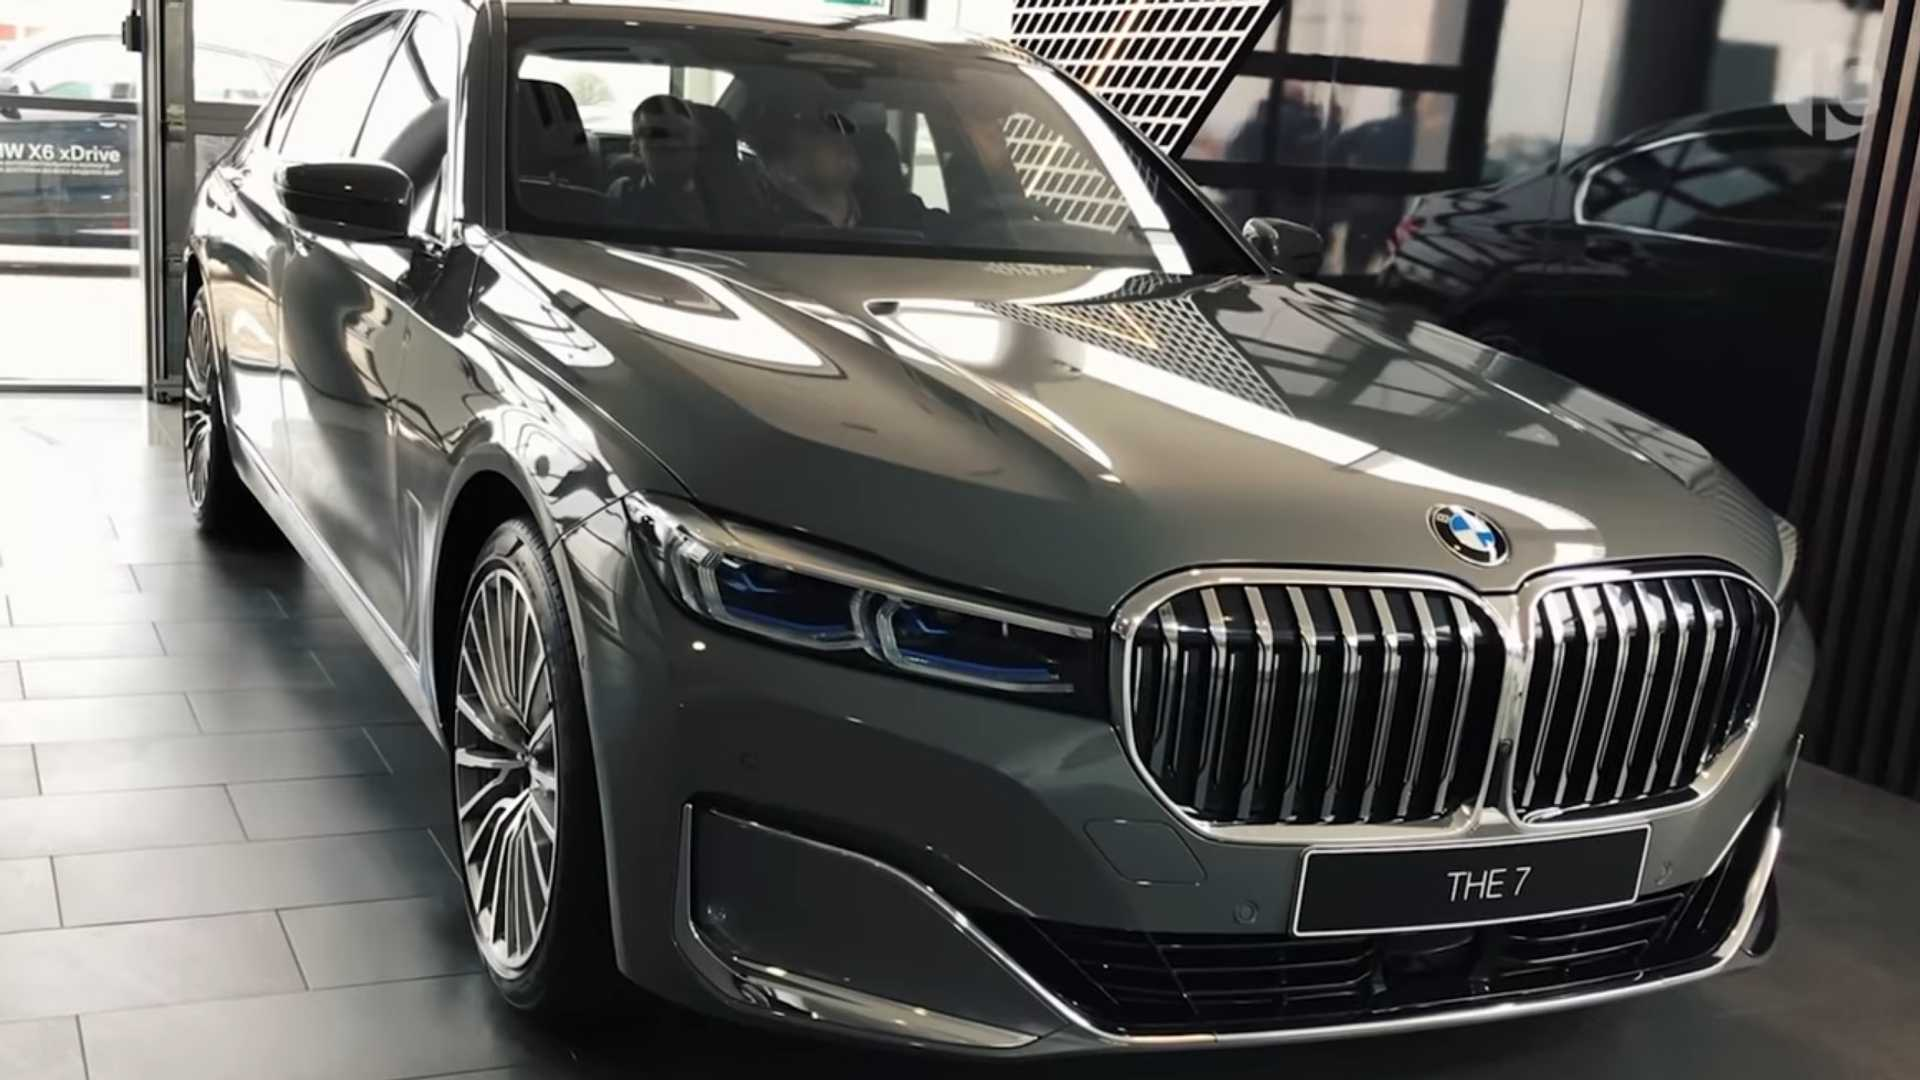 83 All New BMW The 7 2020 New Review by BMW The 7 2020